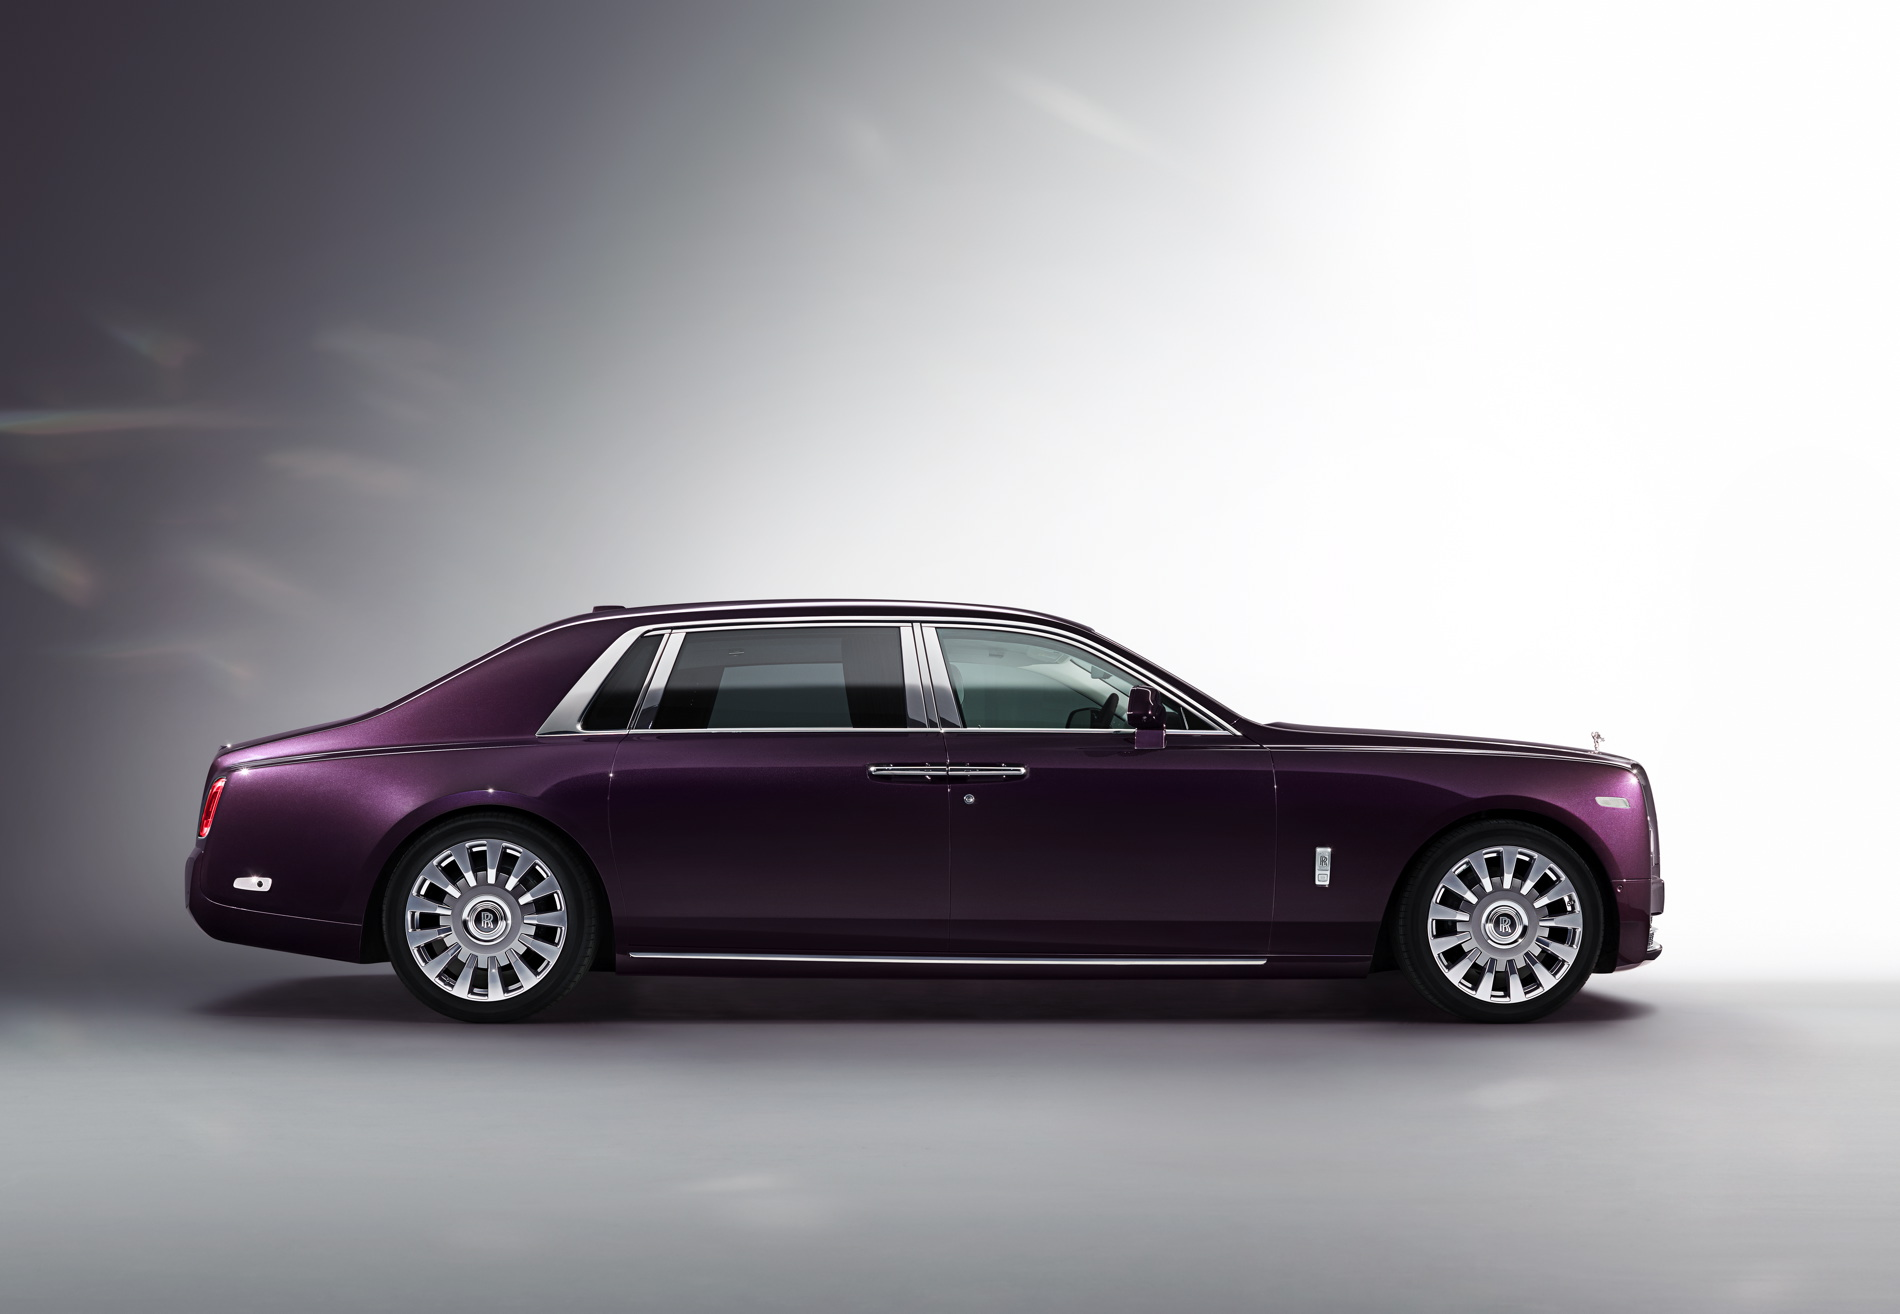 New Rolls-Royce Phantom Extended Wheelbase - Photo Gallery